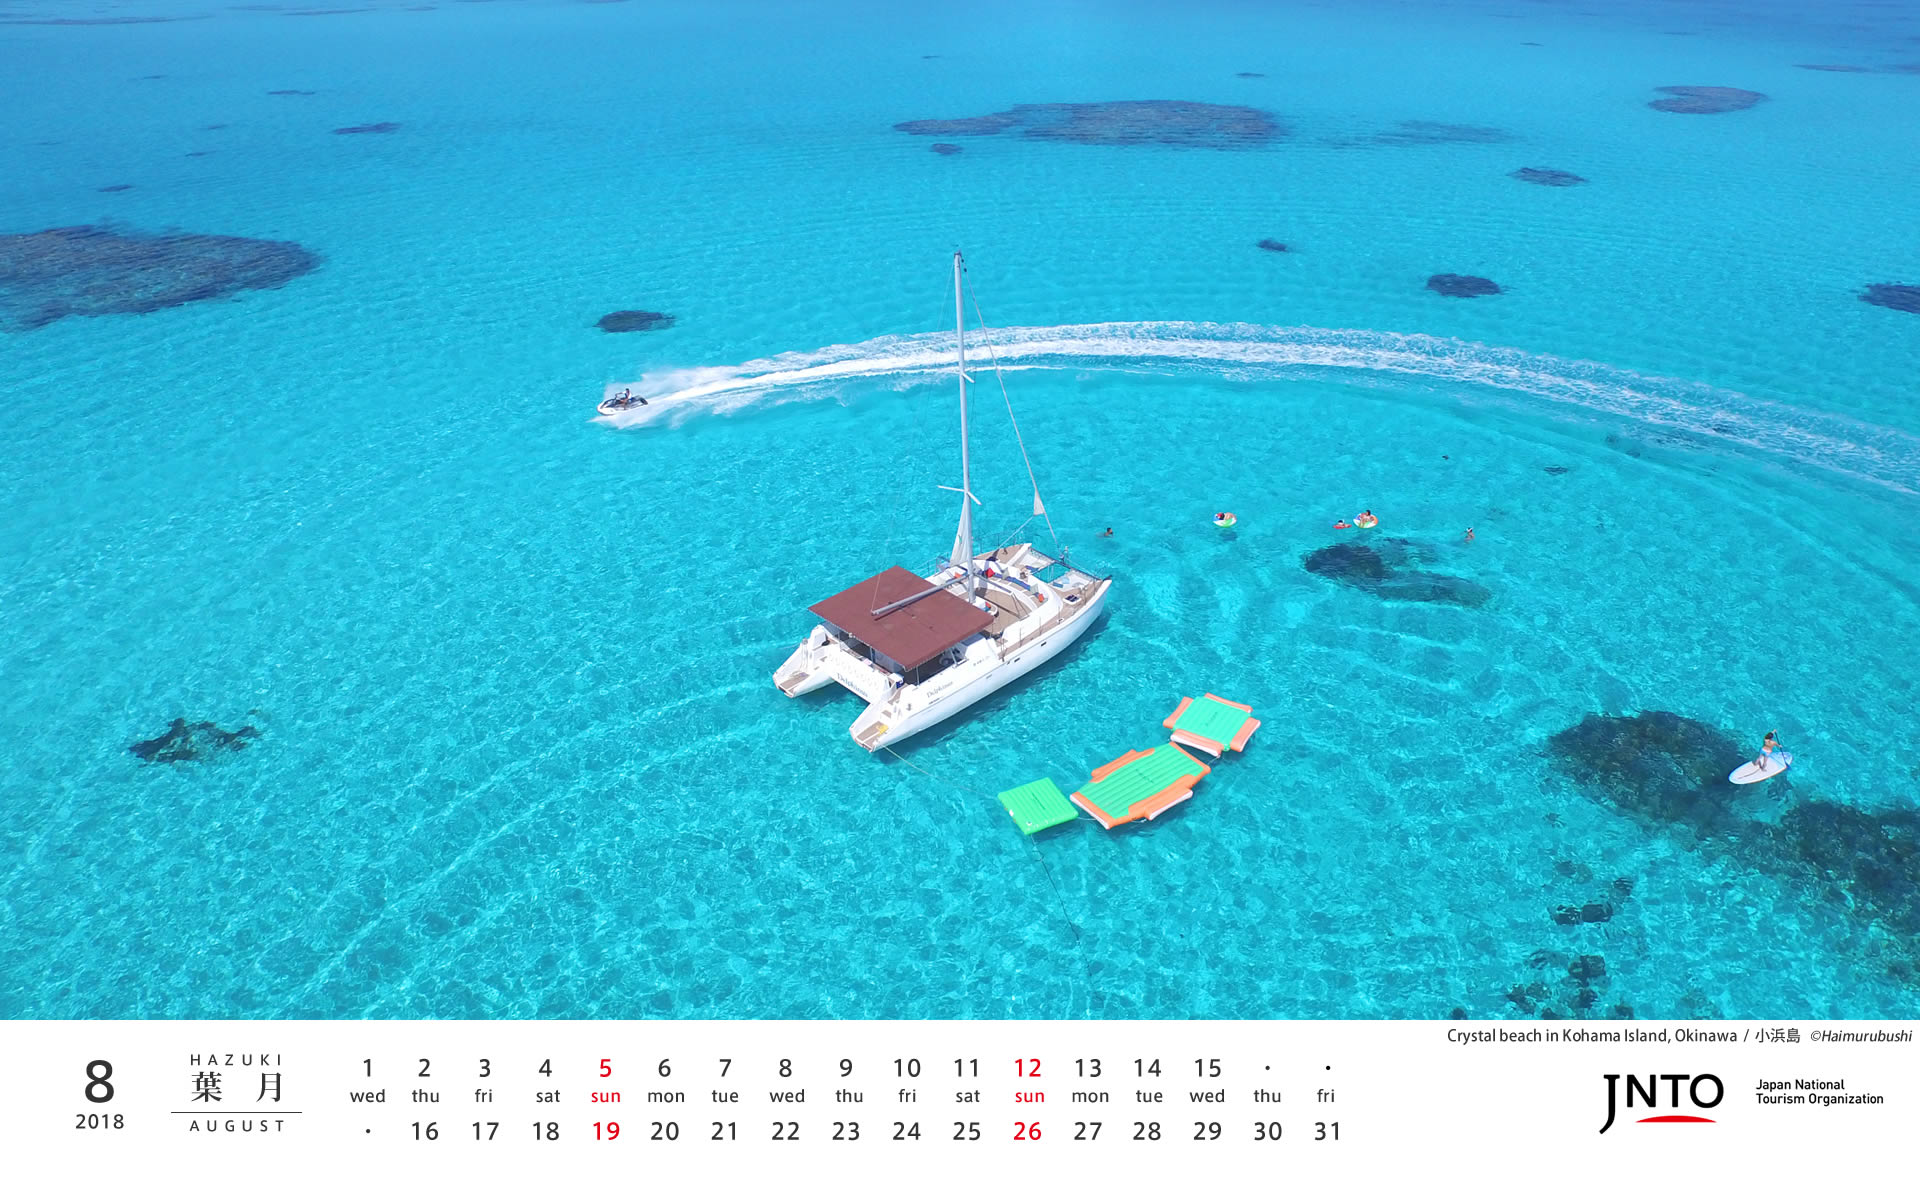 Japan National Tourism Organization 2018 Desktop Calendar